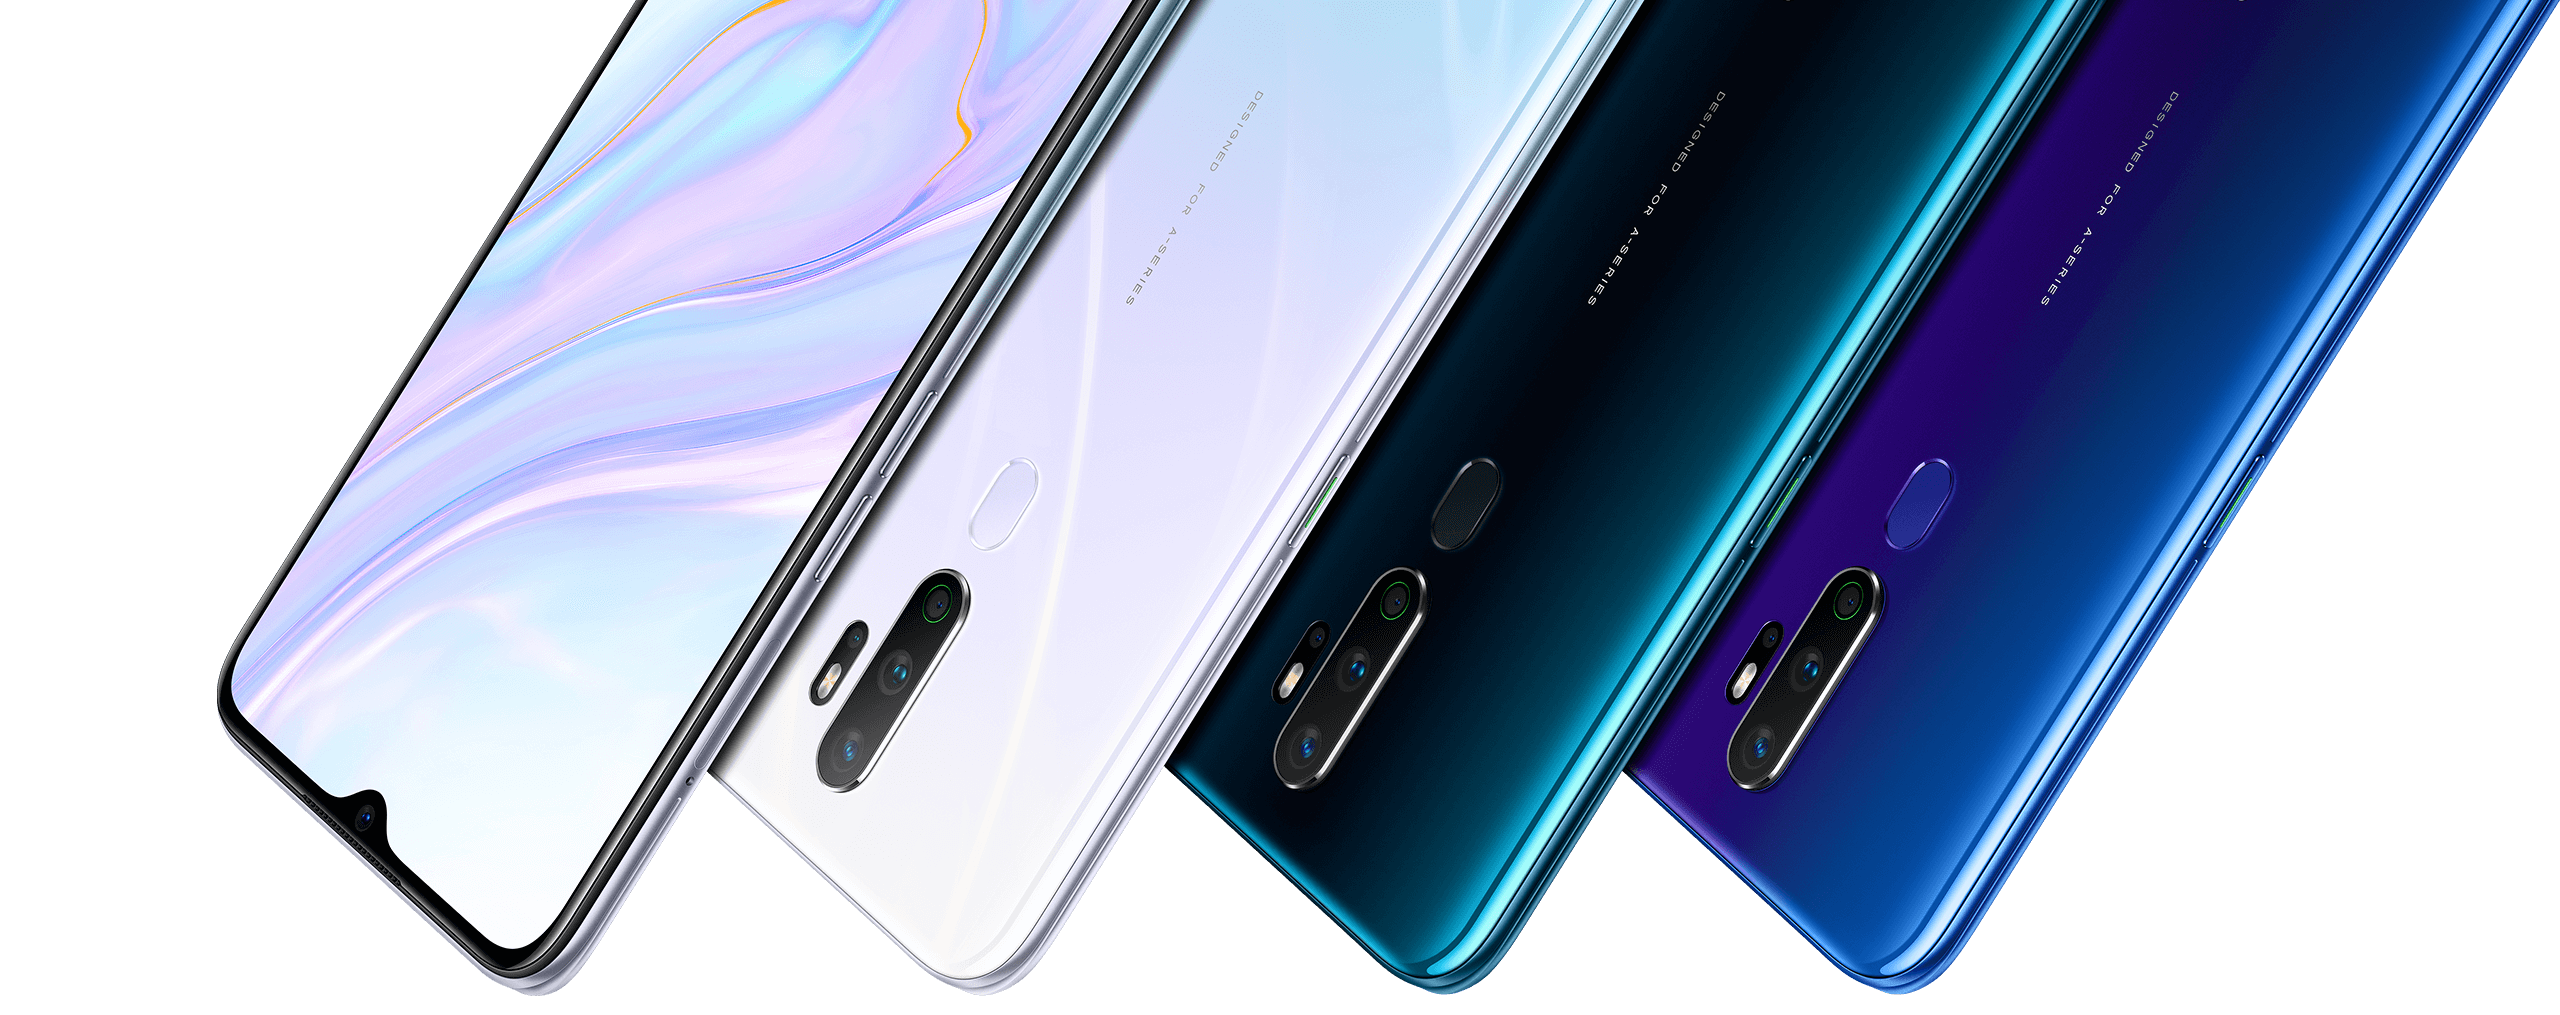 OPPO A9 2020 - 48MP Ultra Wide Quad Camera | 5000mAh Battery